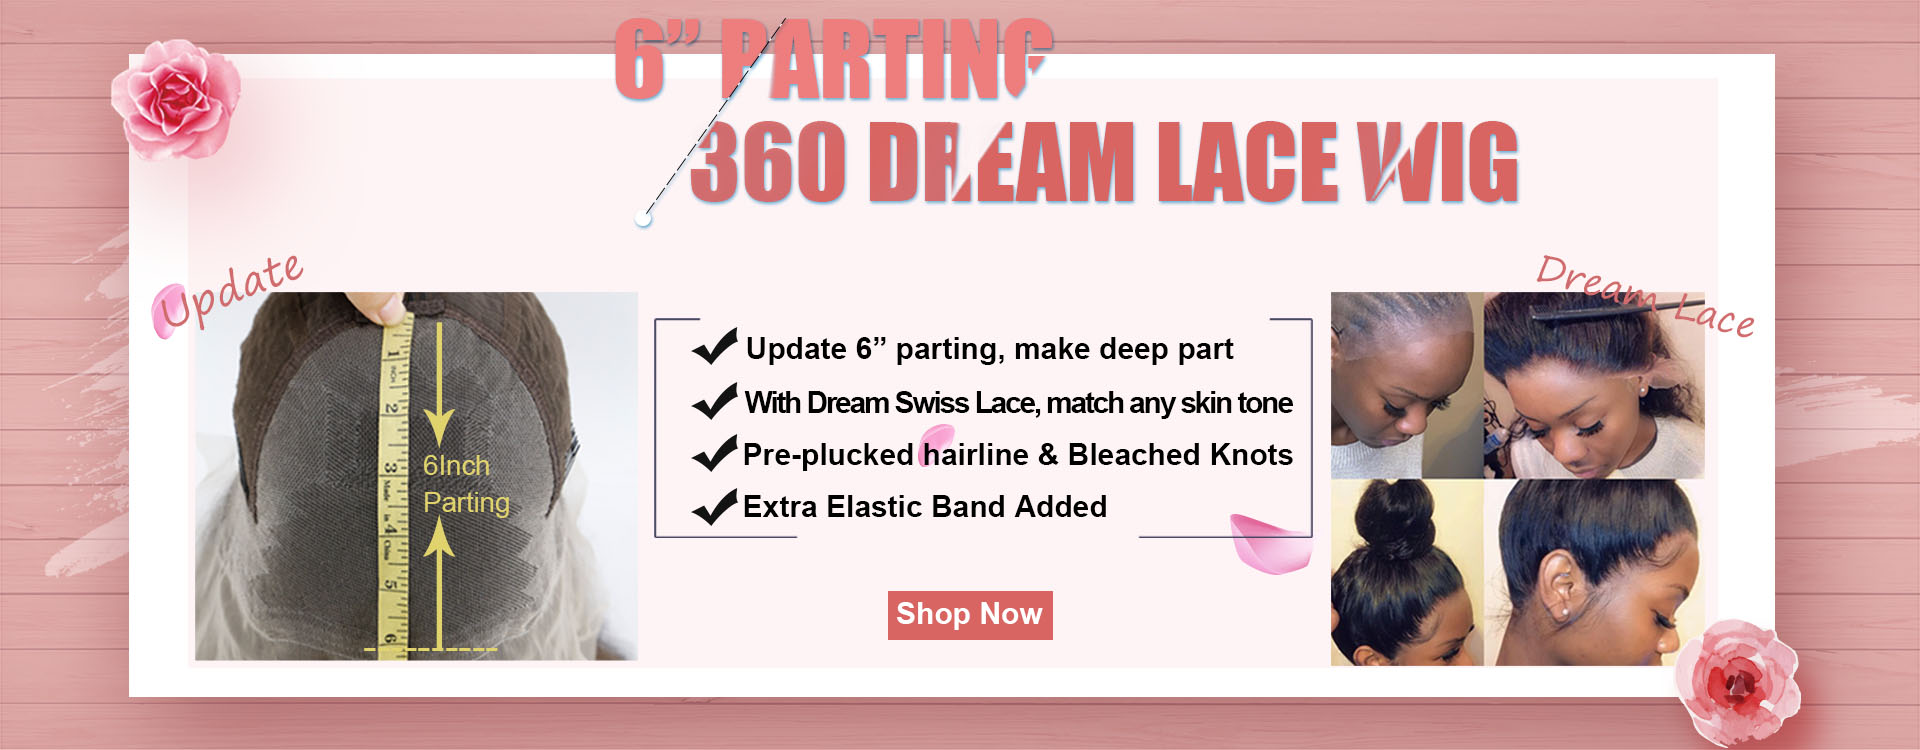 360 lace wig, lwigs, dream swiss lace, undetectable lace wigs,